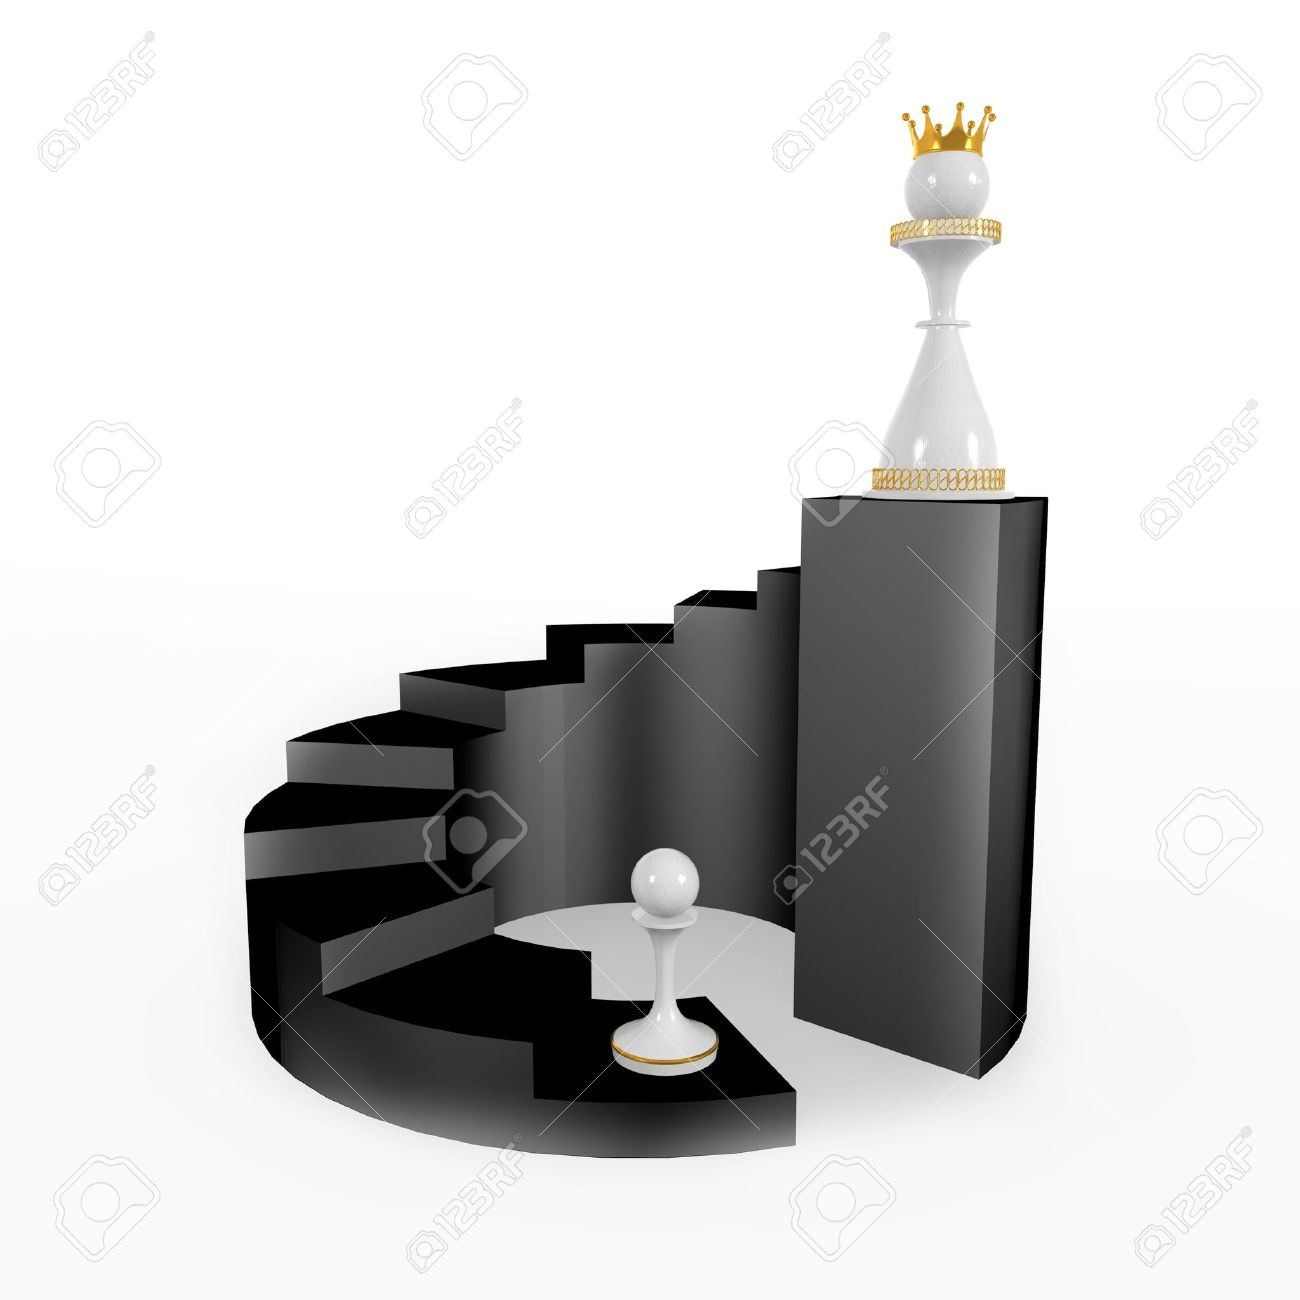 pawn becomes a queen. walks upstairs, career and success Stock Photo - 13661560